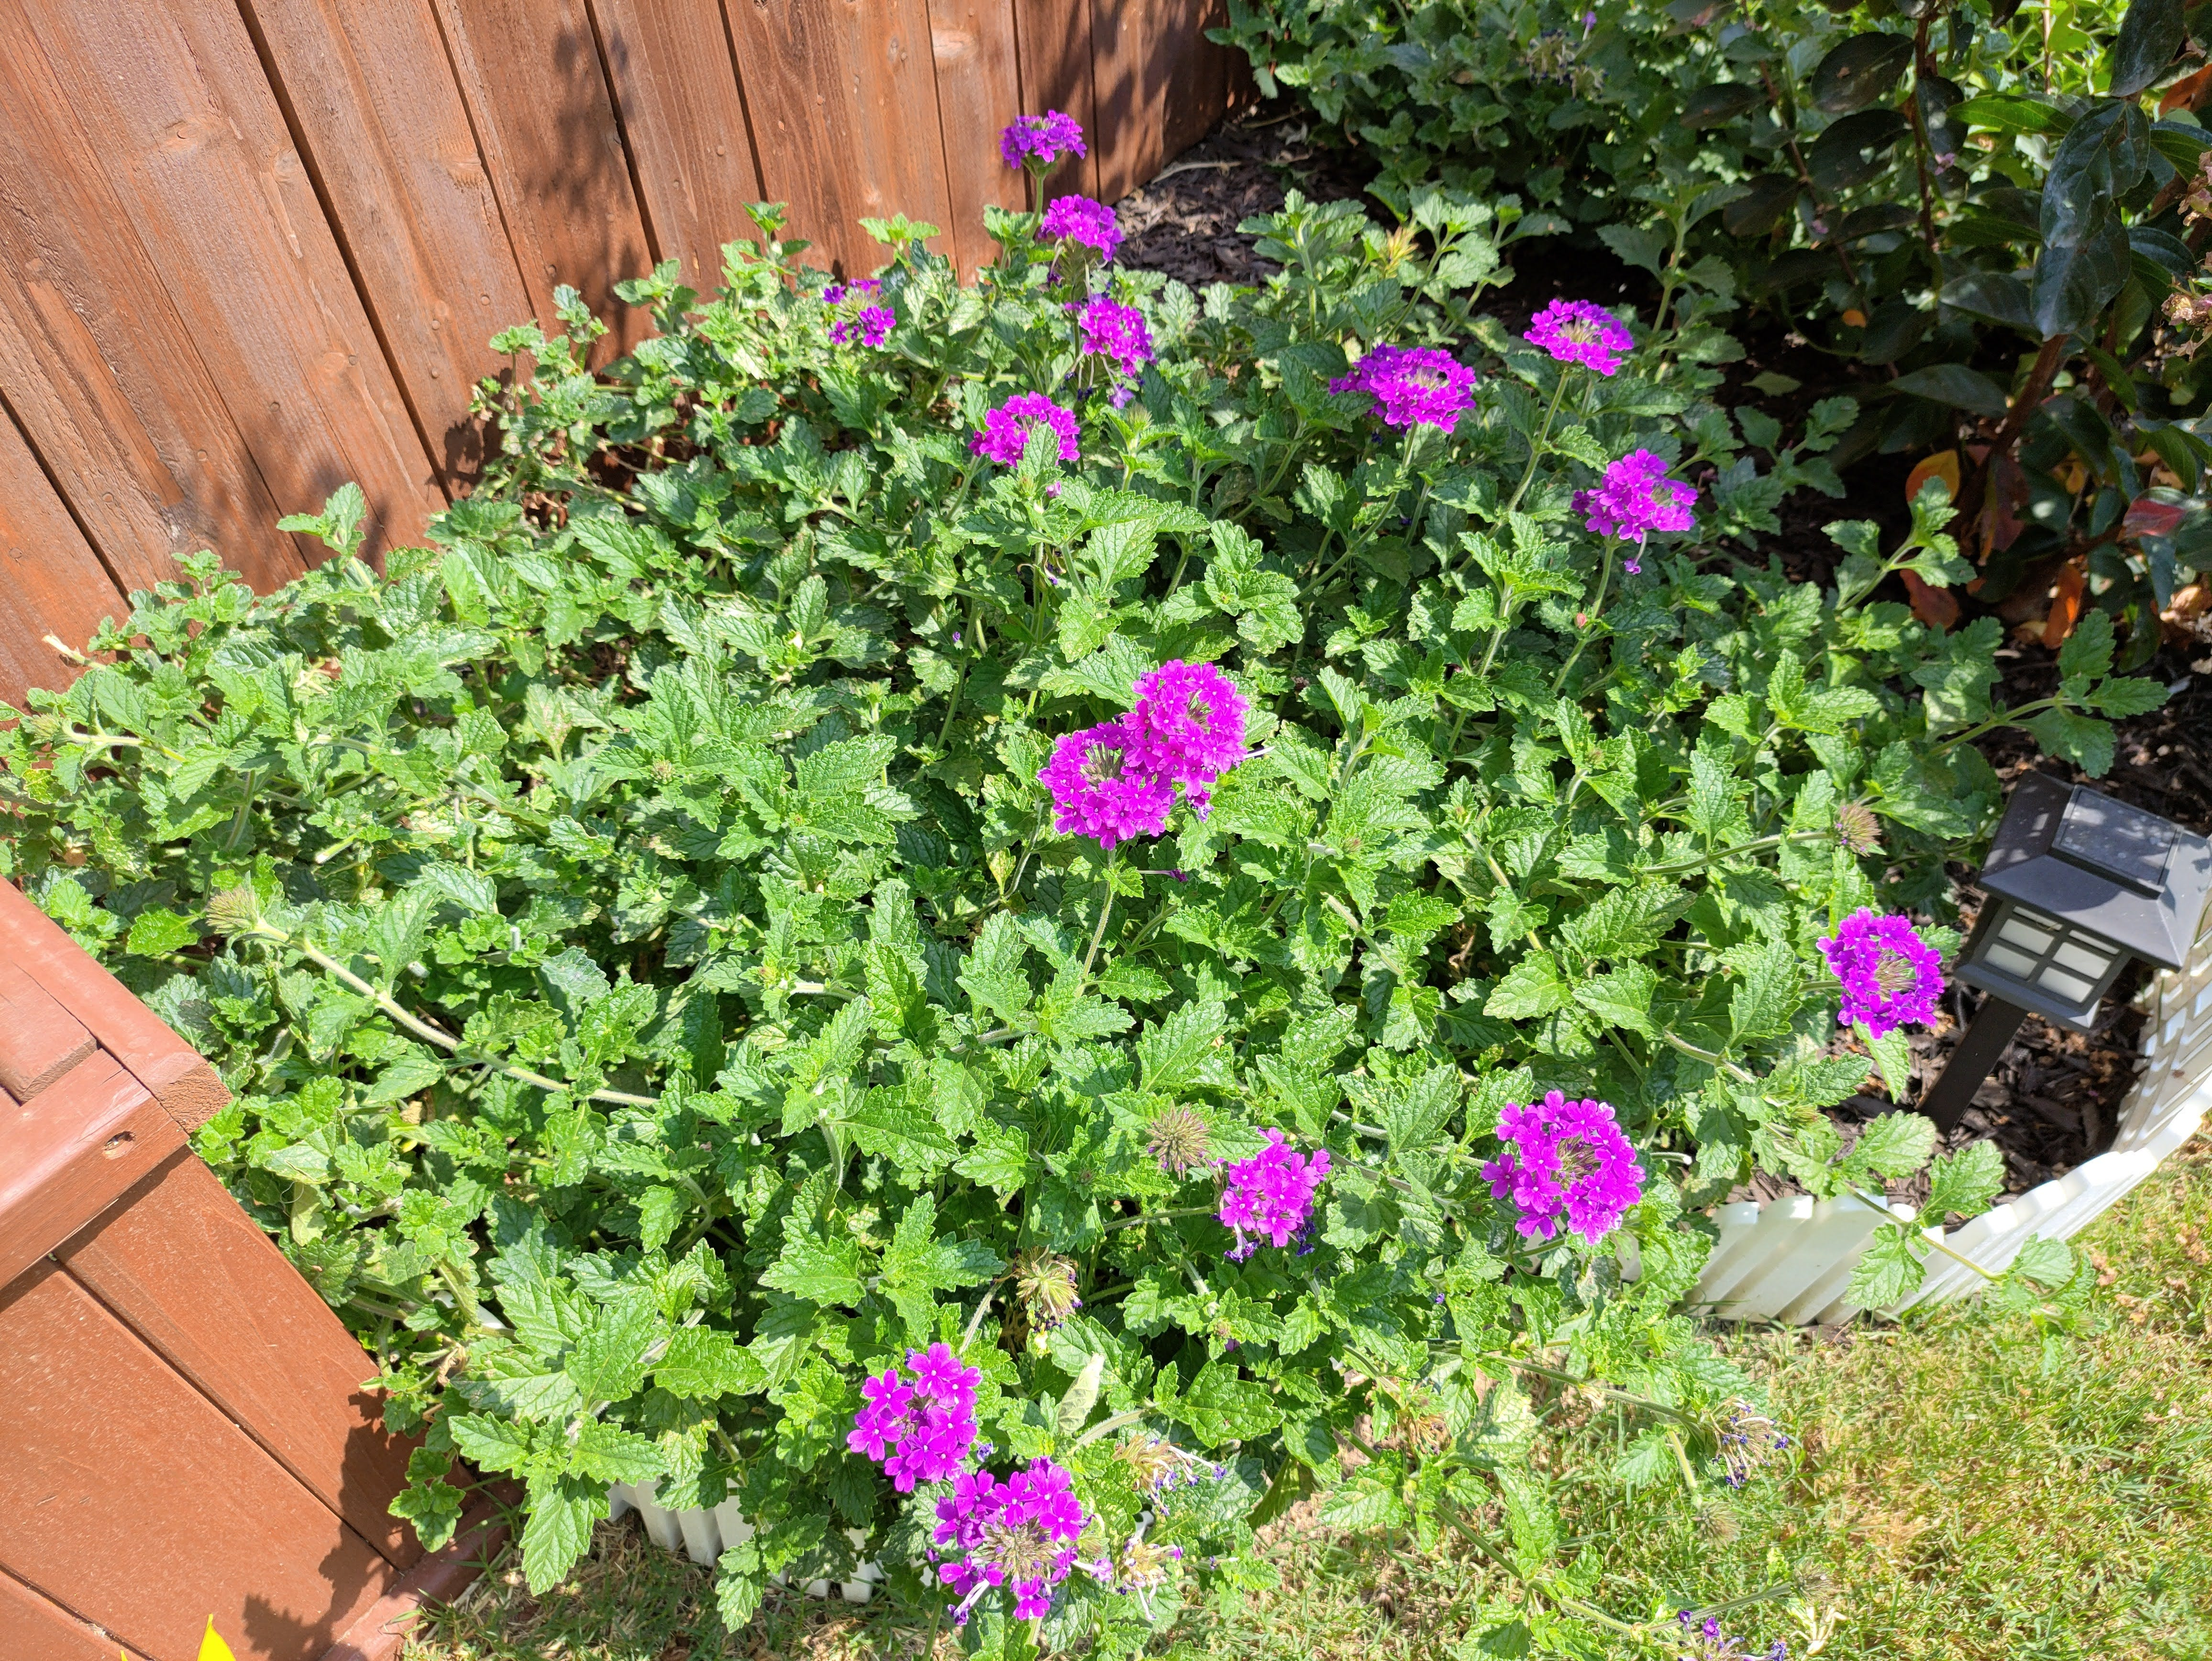 A camera sample with the Red Magic 6R. Bright purple flowers.